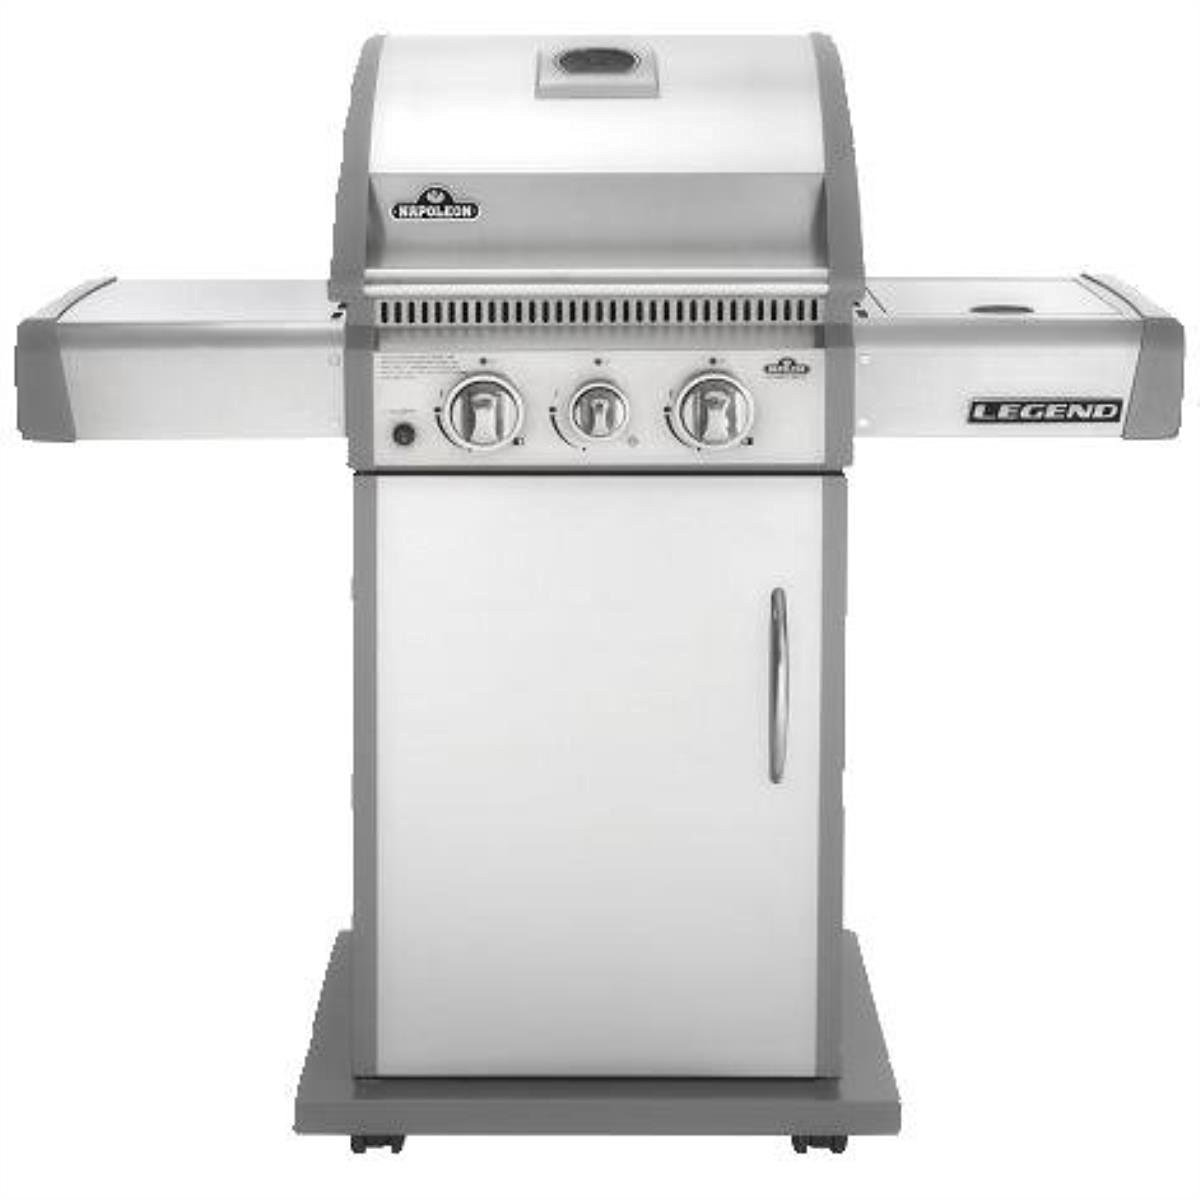 Napoleon/Wolf Steel Usa LA200SBPSS Legend Barbecue Grill, Gas Propane, 2-Burner, 43,000 BTU, 435-Sq. Ft. Cooking Area